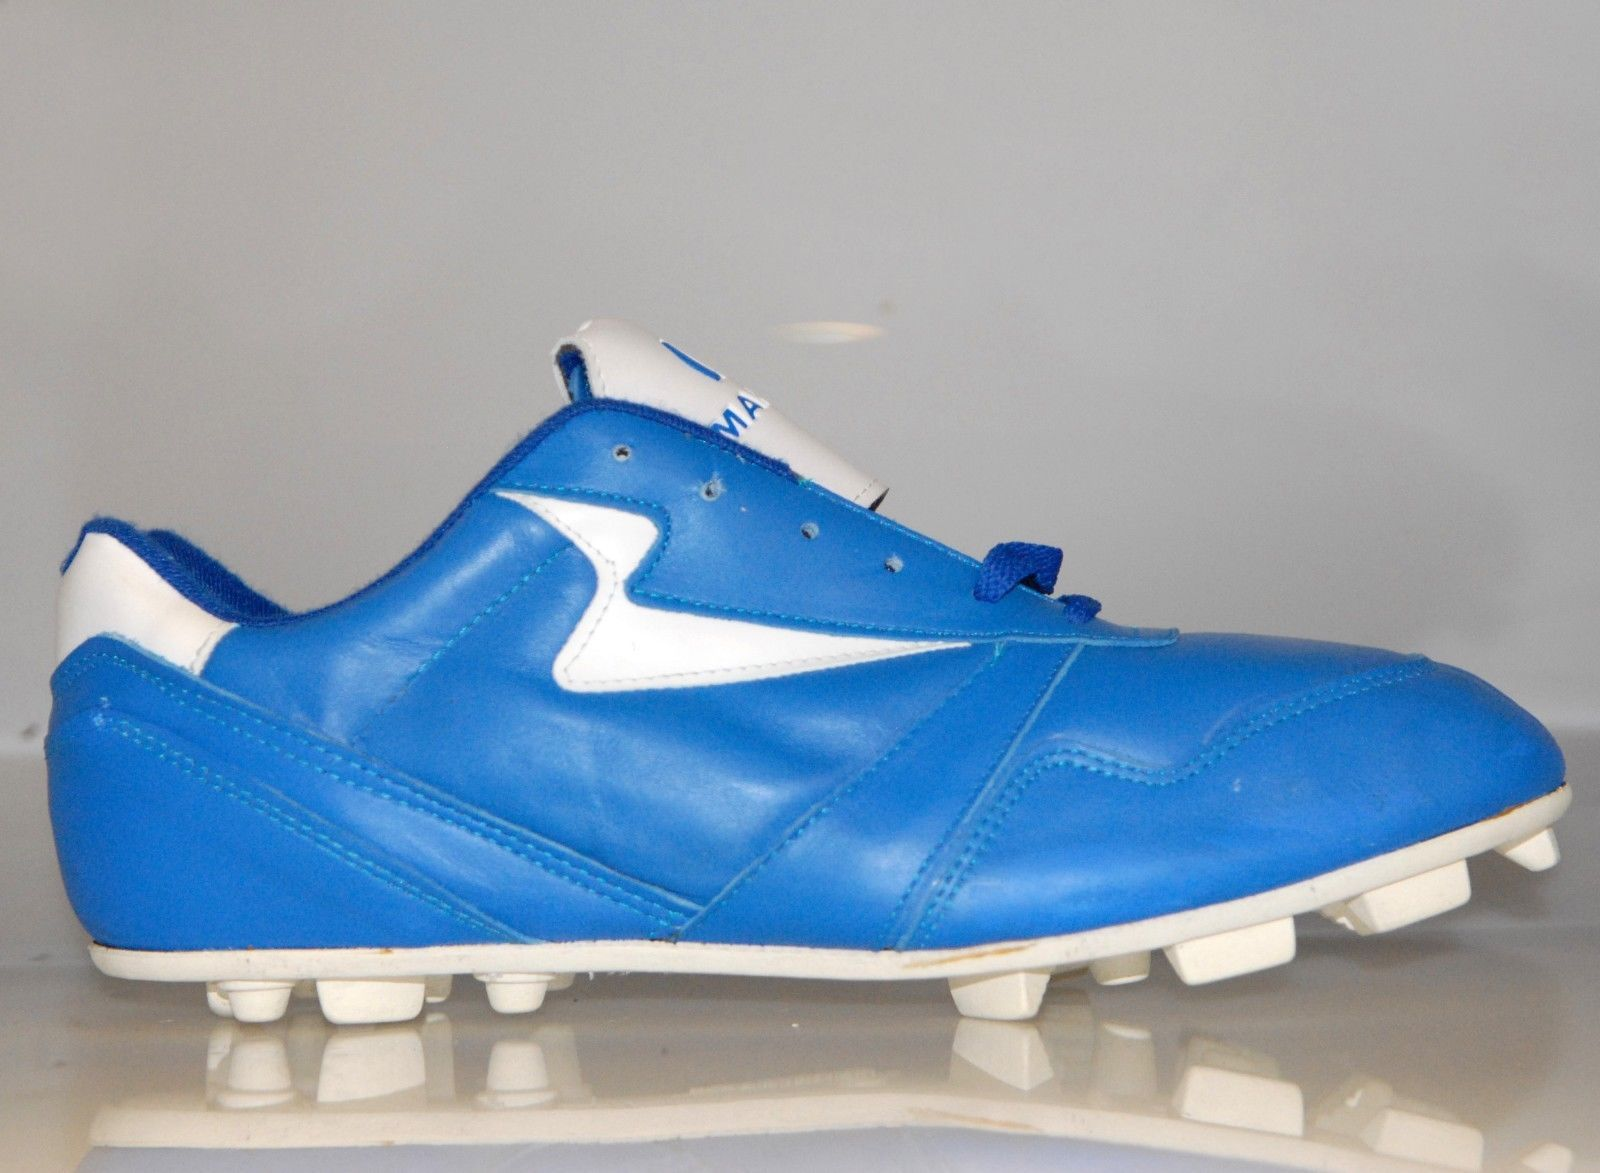 pick up 3e9a0 17f0e Men s Manriquez Baseball Cleats Leather Blue and 50 similar items. 57